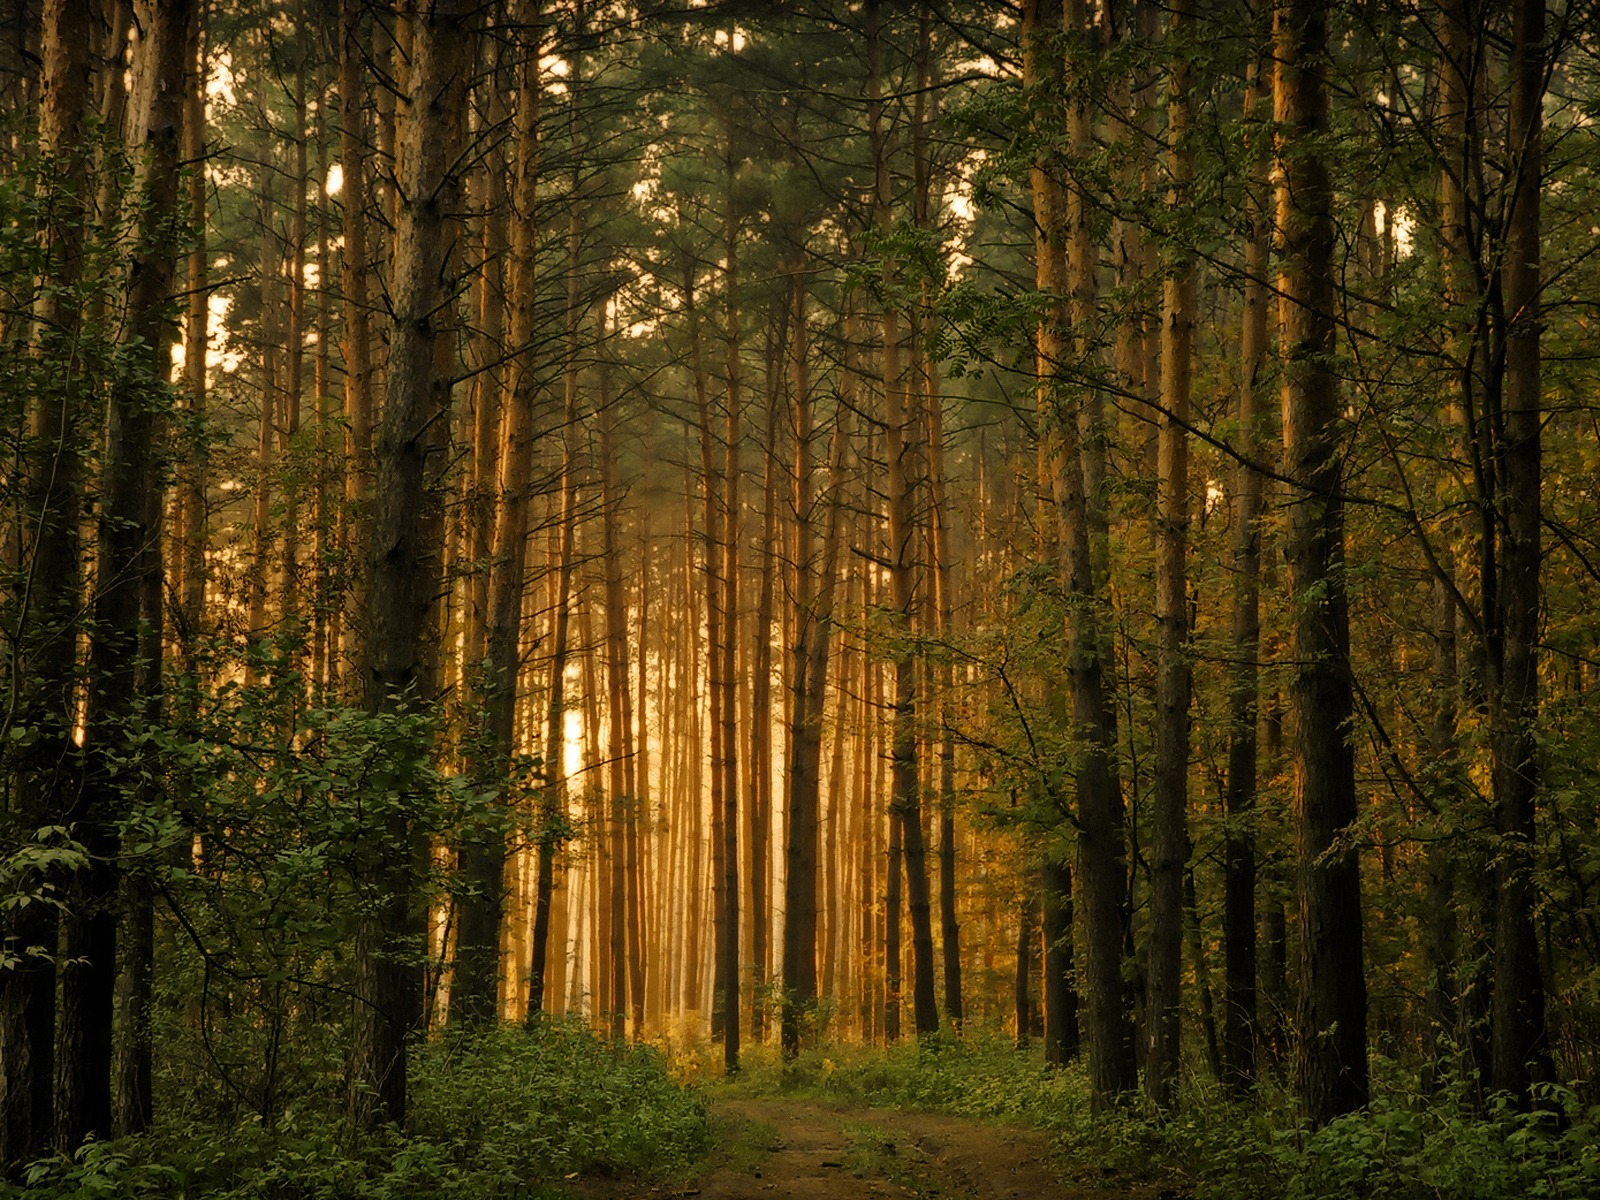 forest_trees_wallpaper_landscape_nature_wallpaper_1600_1200_1218